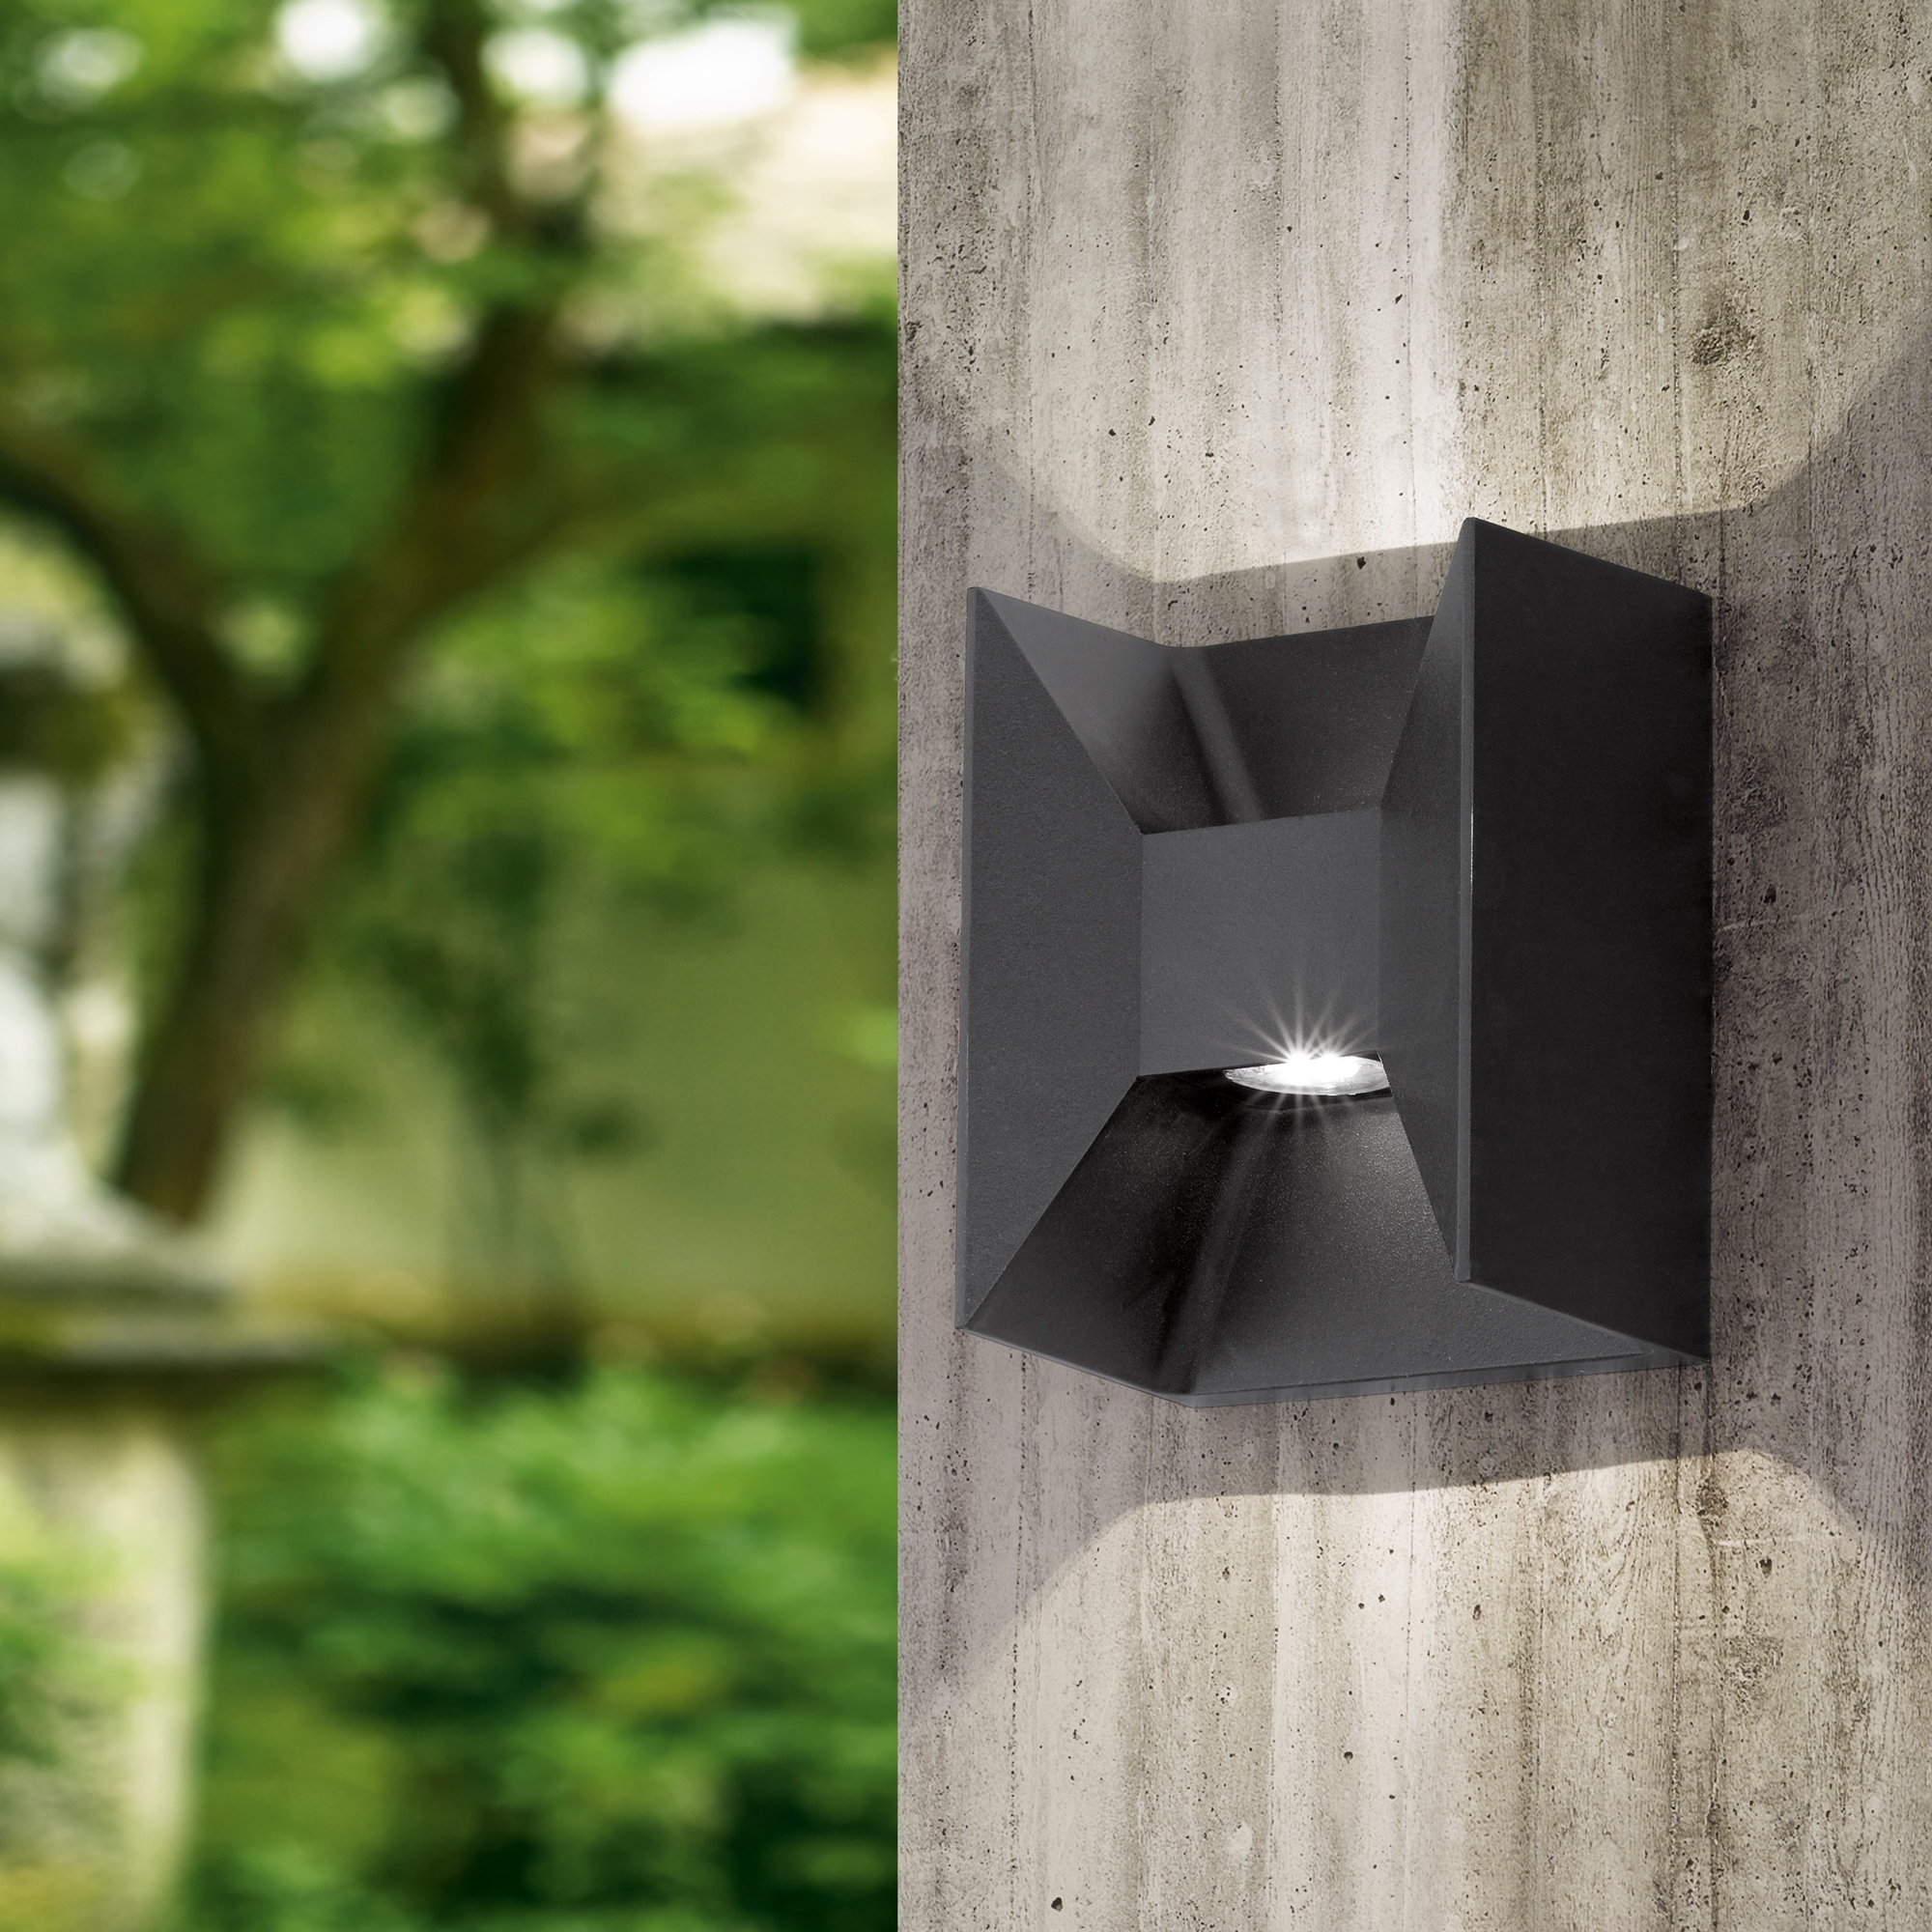 Inspiration about 93319 / Morino / Outdoor Lighting / Main Collections / Products Throughout Eglo Outdoor Lighting (#12 of 15)